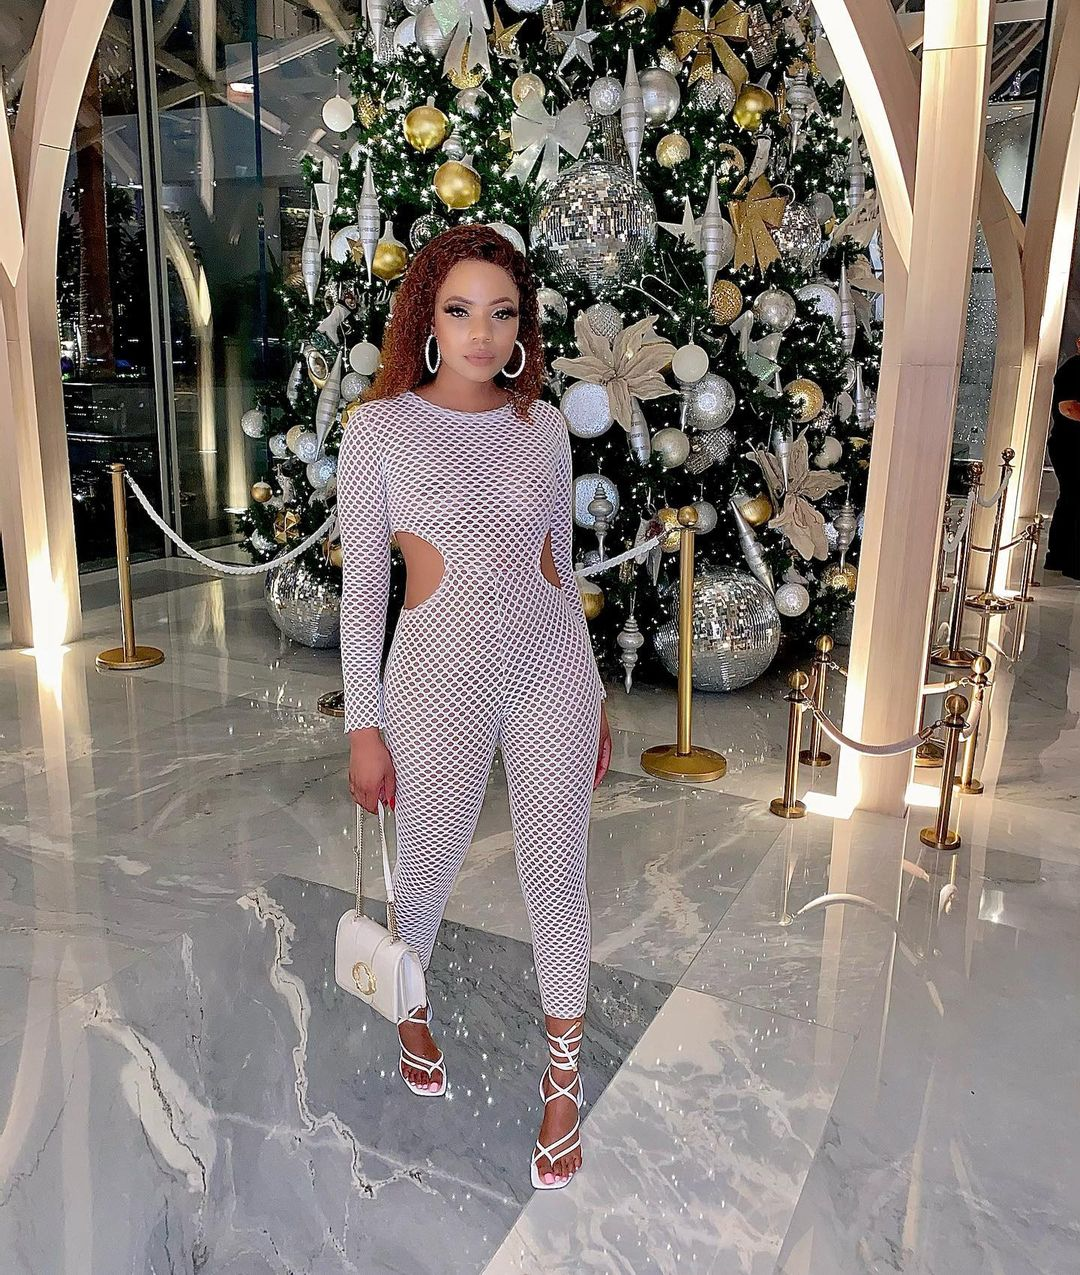 Sino Booi Keeps The Drip In With Classy White